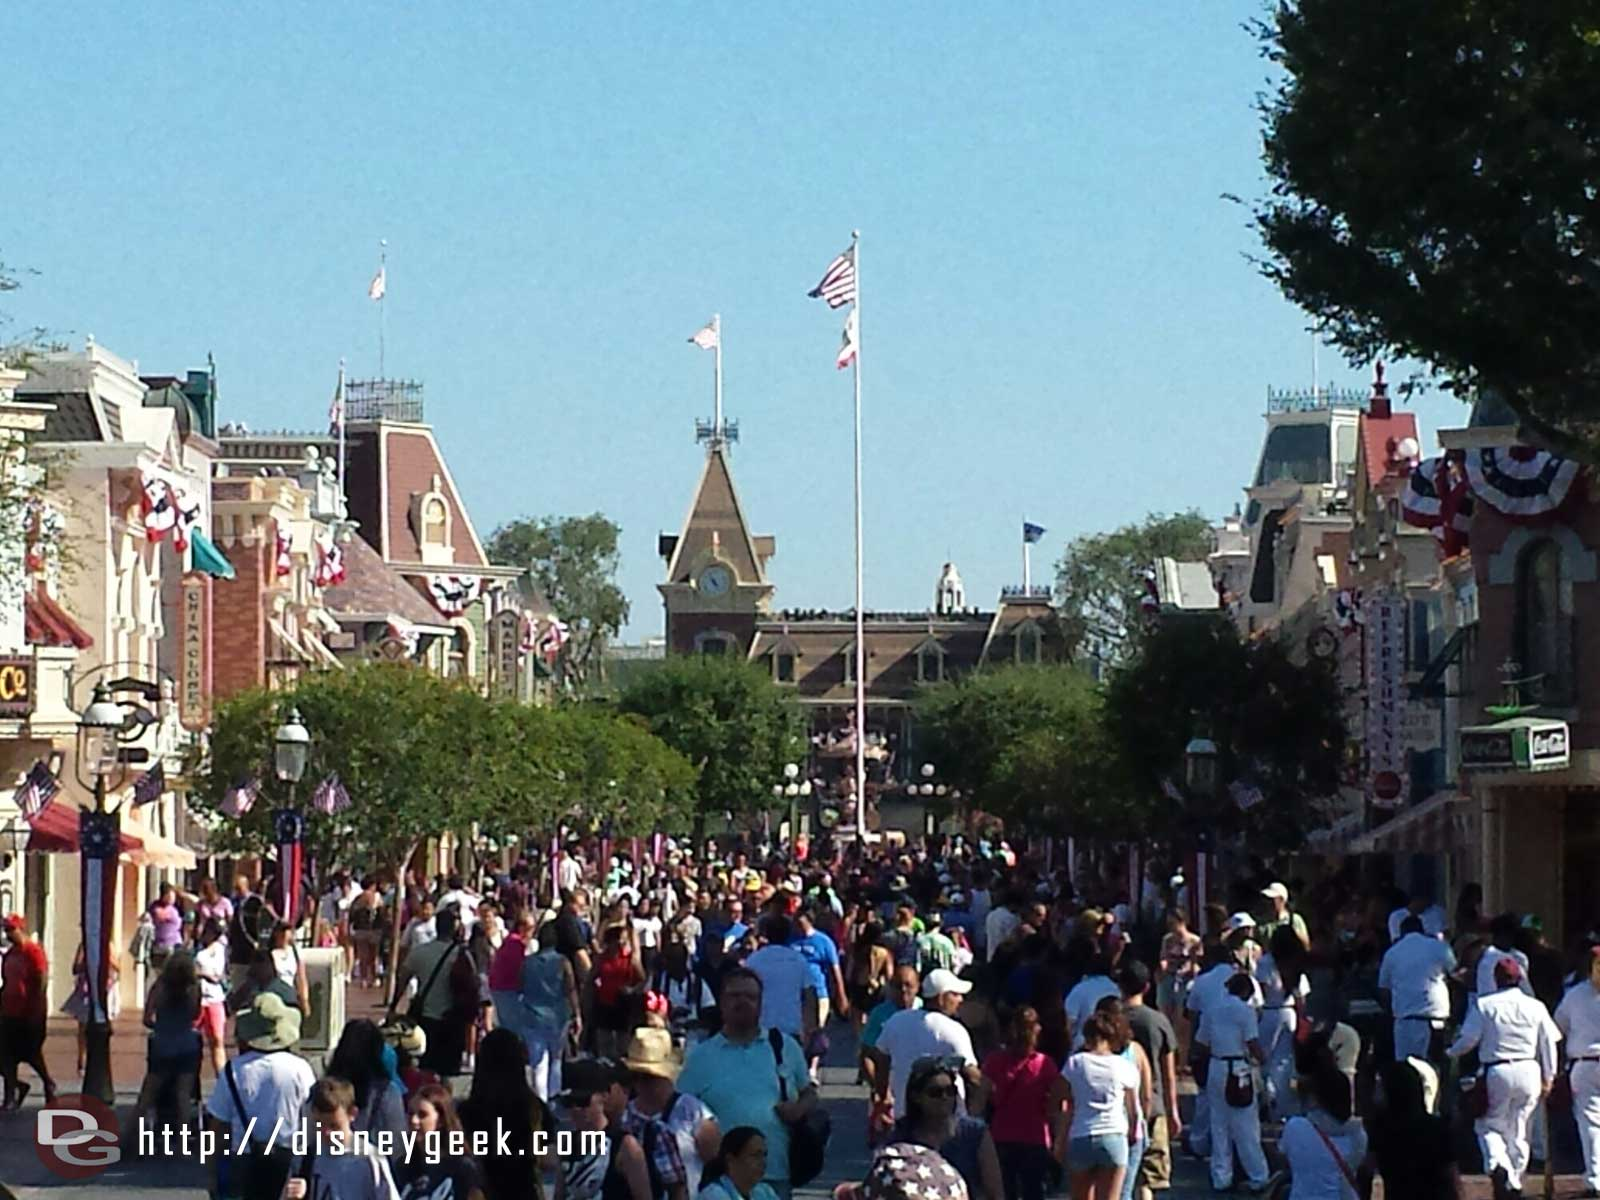 A look down Main Street USA, in the distance the final Soundsational float is just passing through Town Square